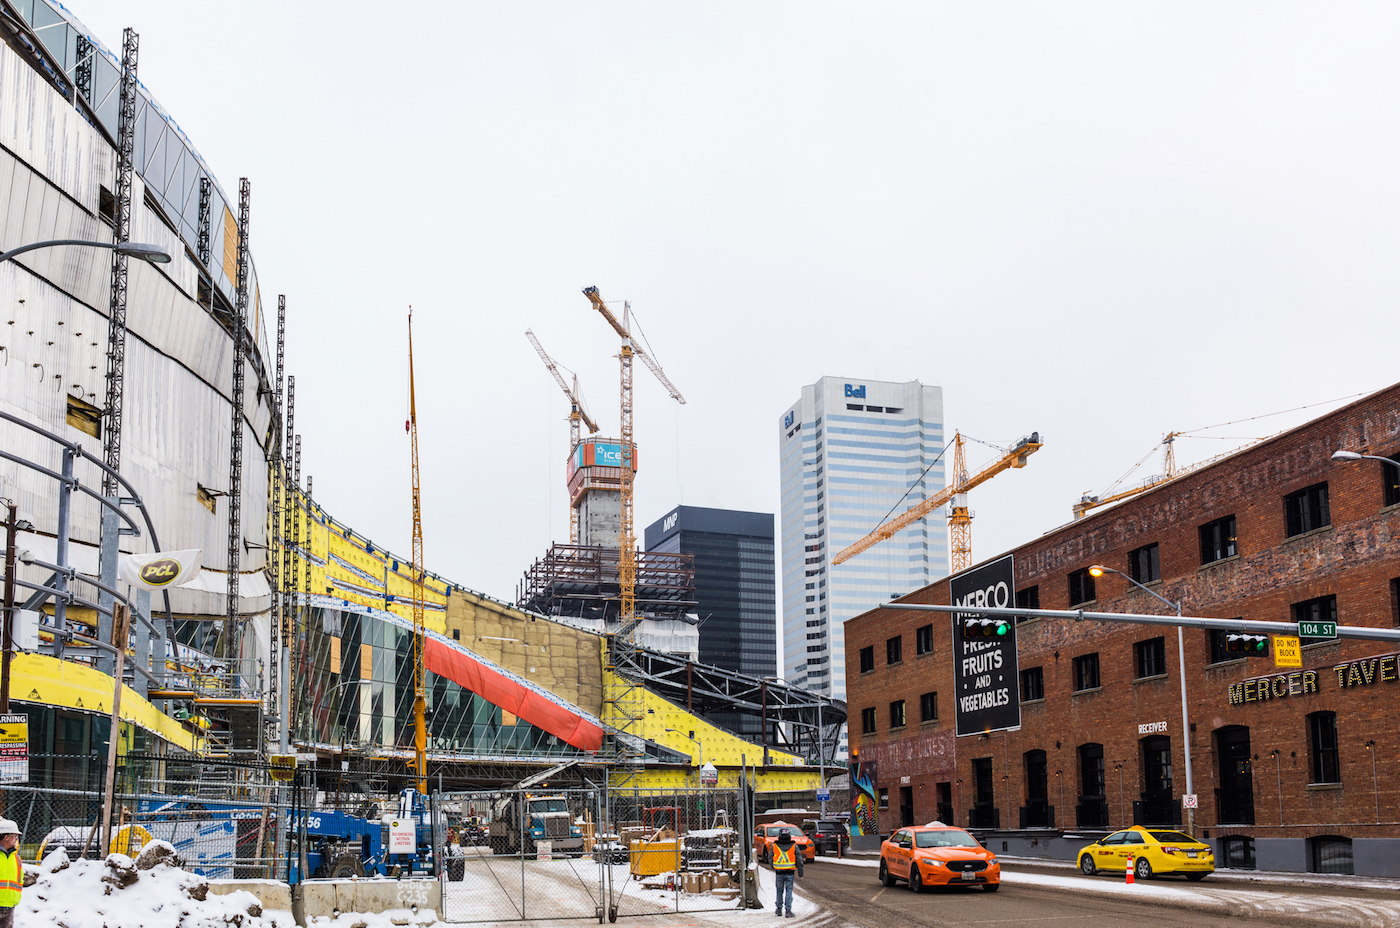 Stainless Steel Skin Appears On Rogers Place Skyrisecities